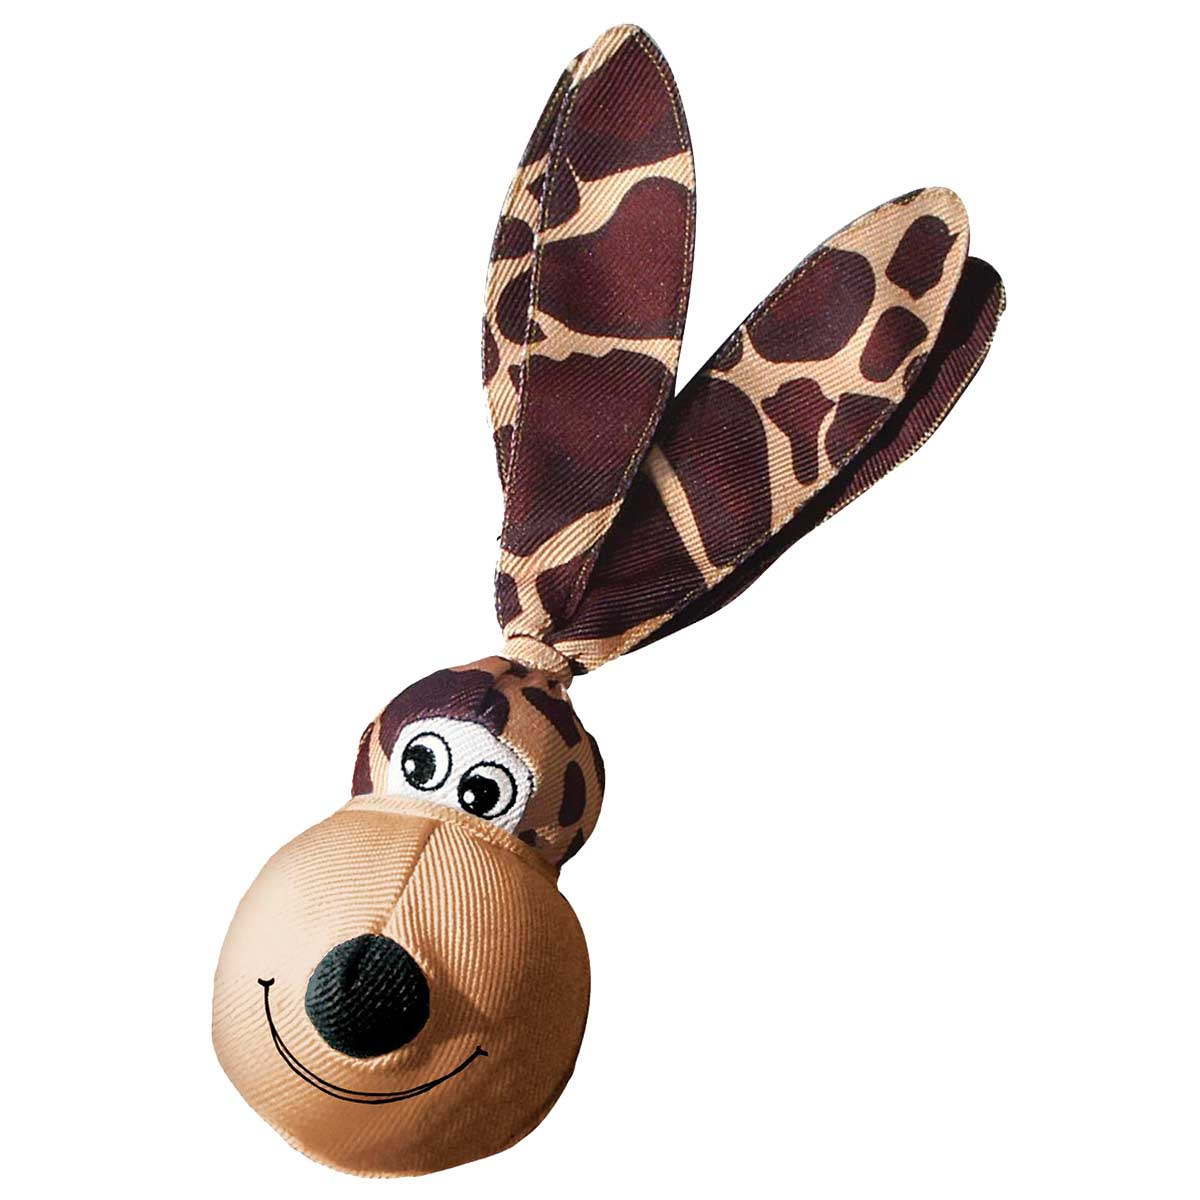 Large KONG Wubba Floppy Ears Dog Toy - 13 inch